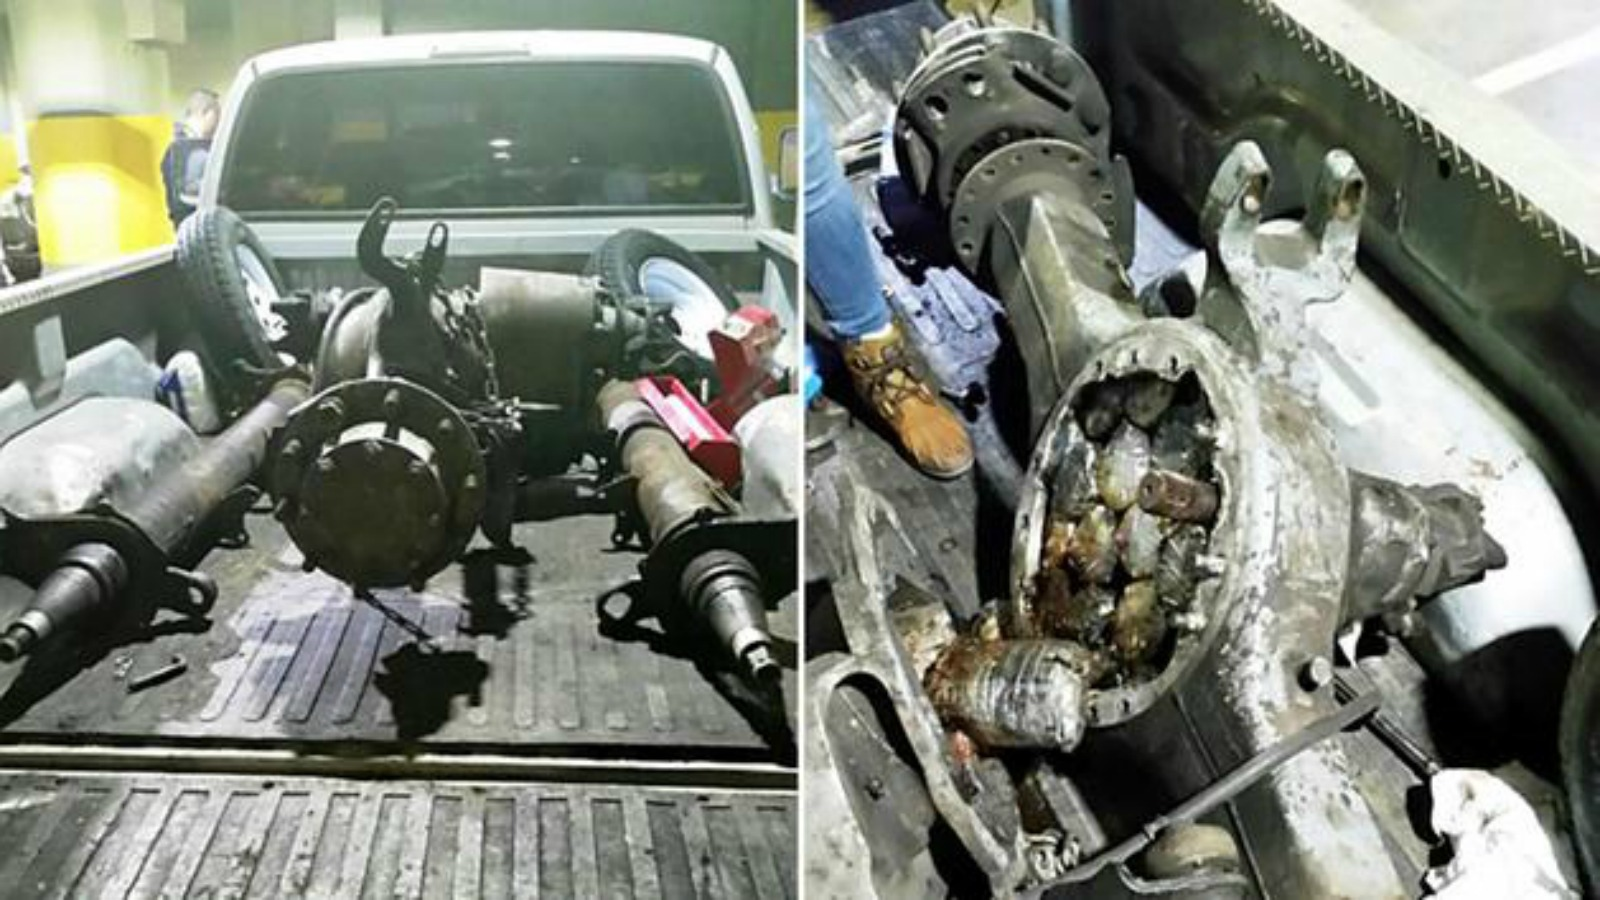 One of the trucks seized, left, and the heroin bundled inside the axle and the drive shaft casings. (NYPD)